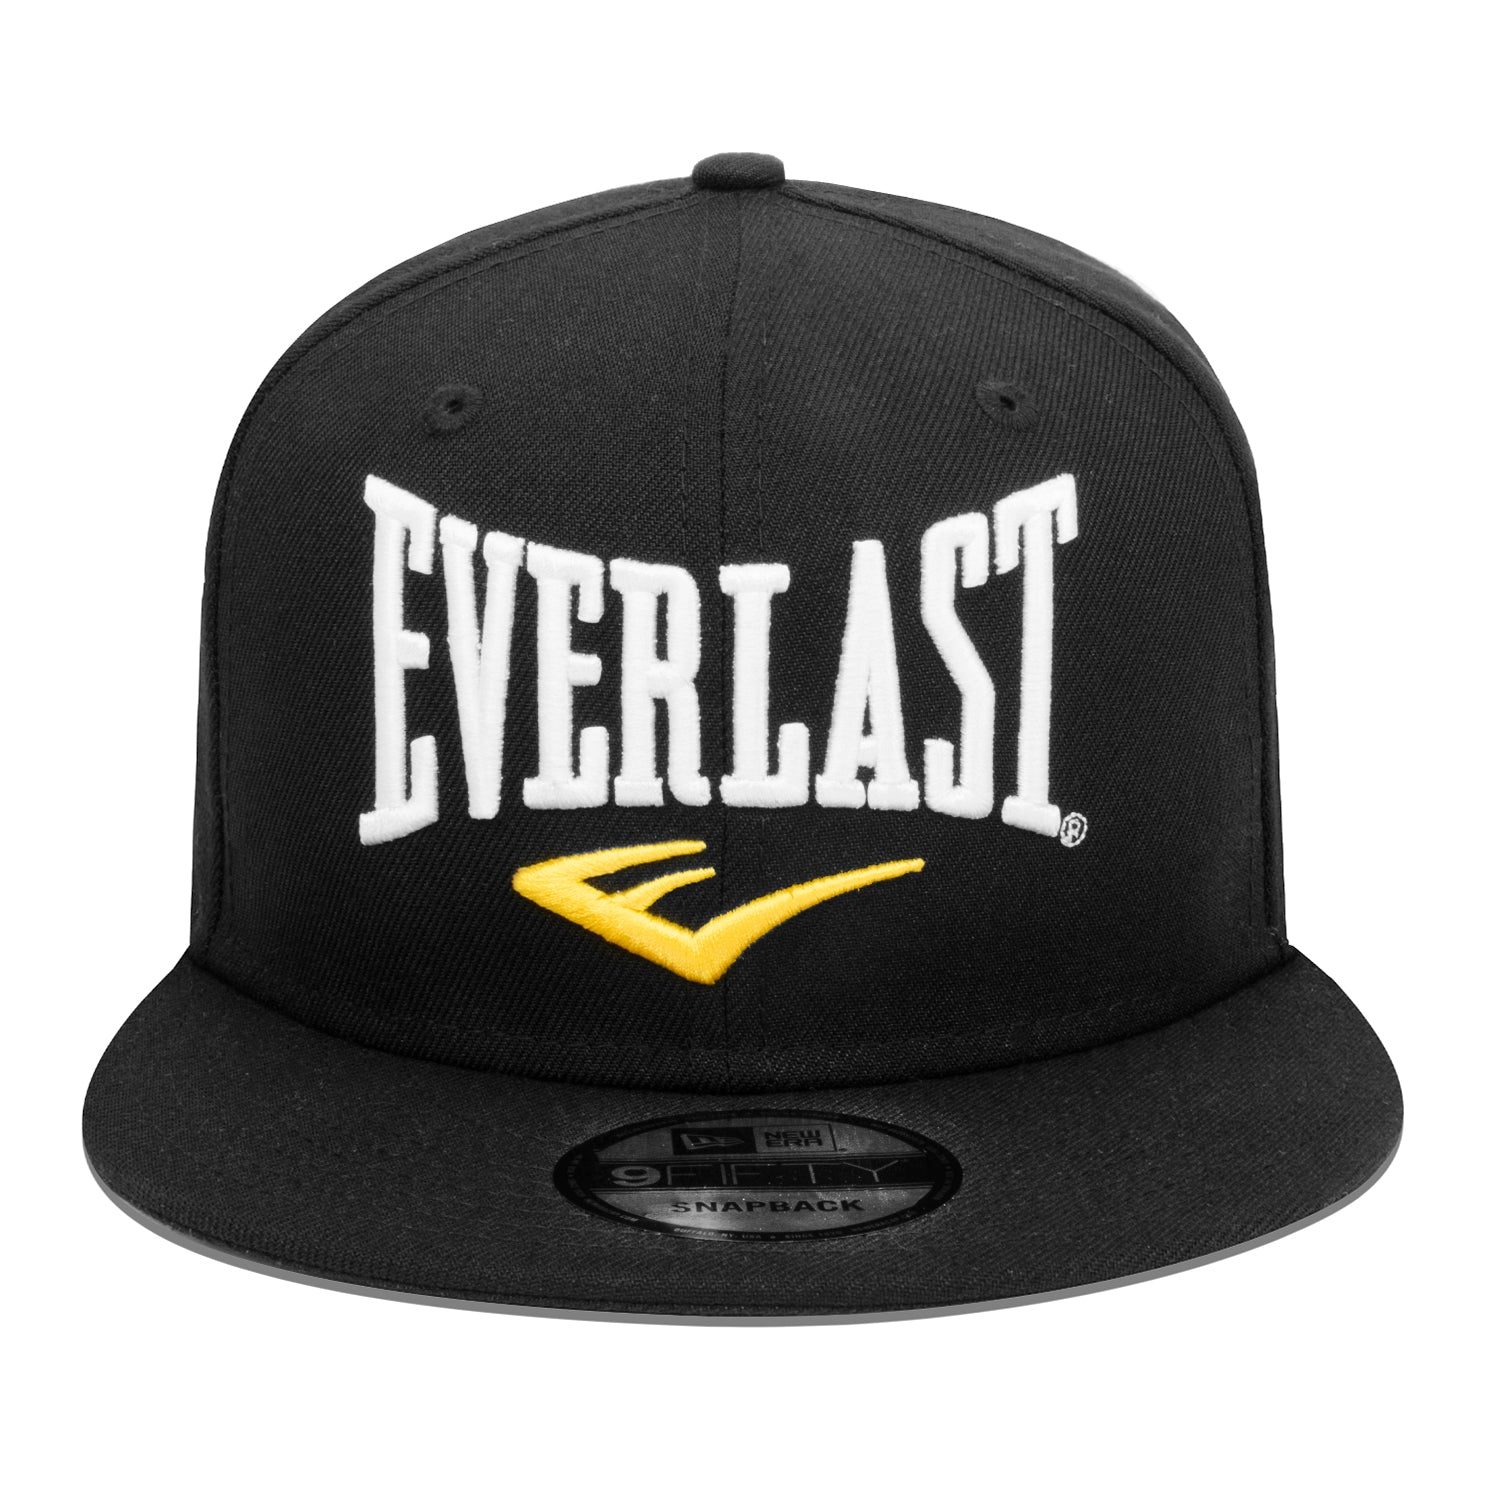 Everlast New Era 9FIFTY Black Snapback Logo Cap by Everlast Canada